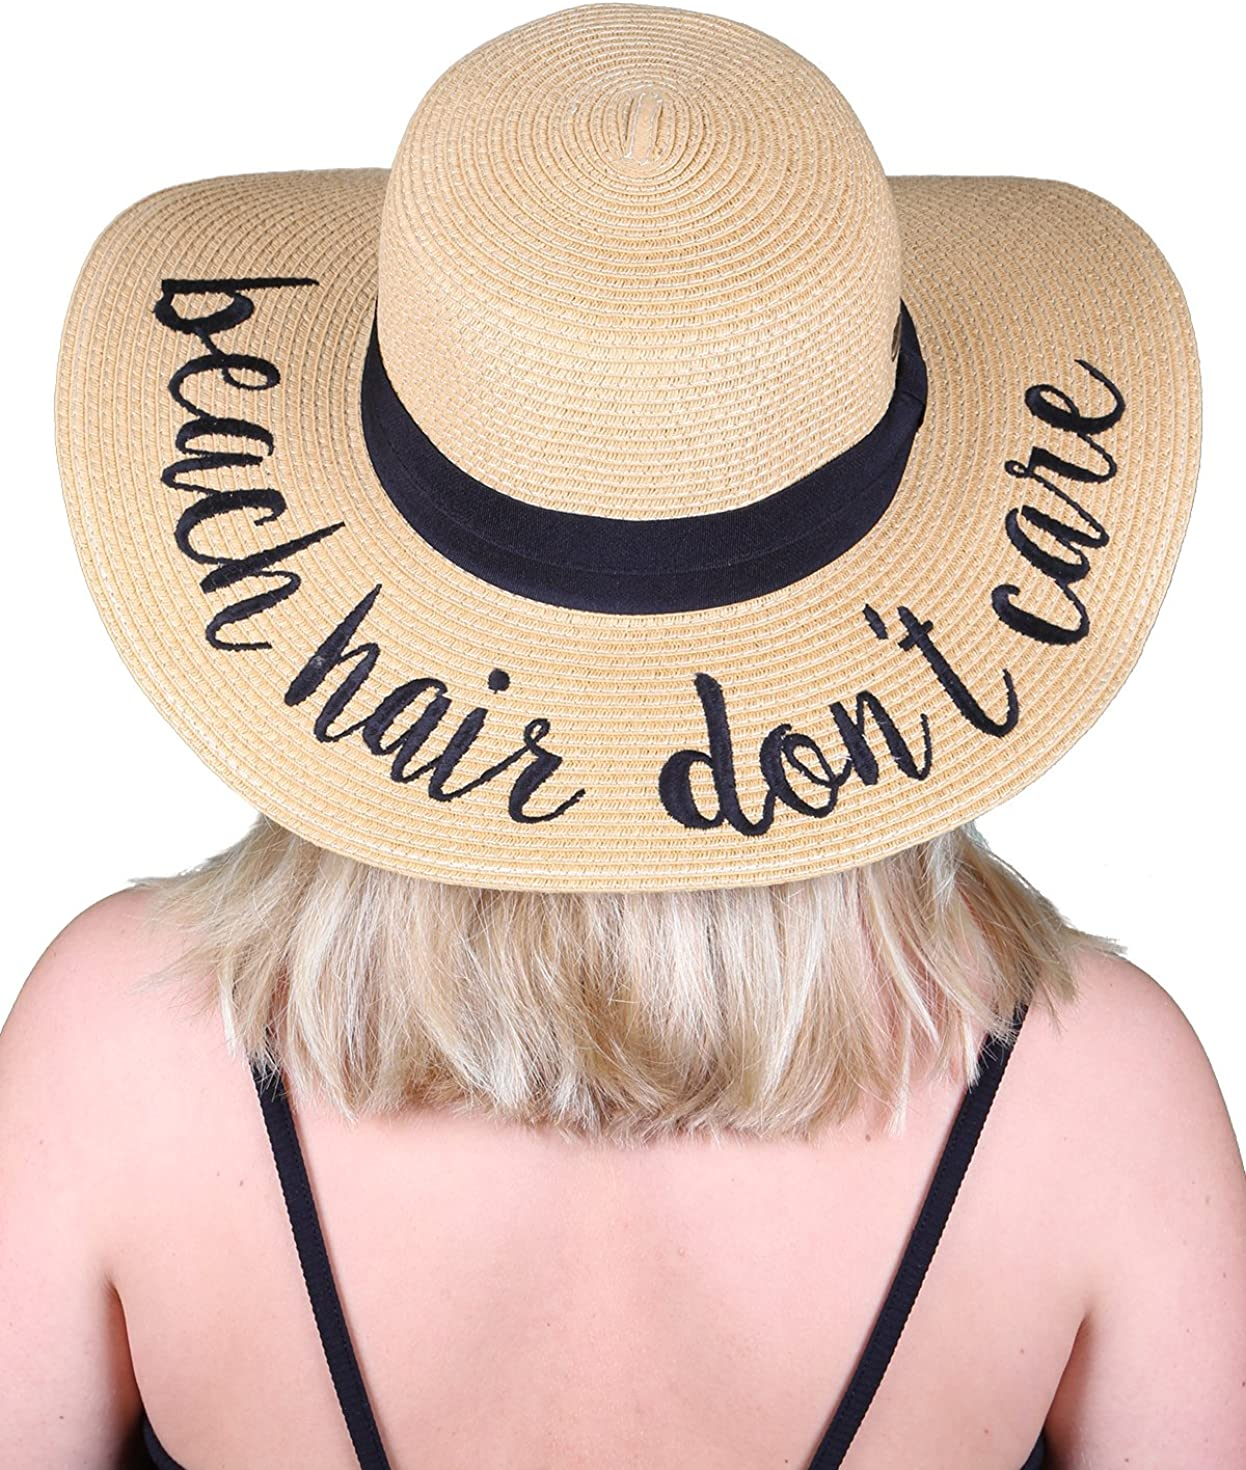 Funky Junque Women's Bold Cursive Embroidered Adjustable Beach Floppy Sun Hat